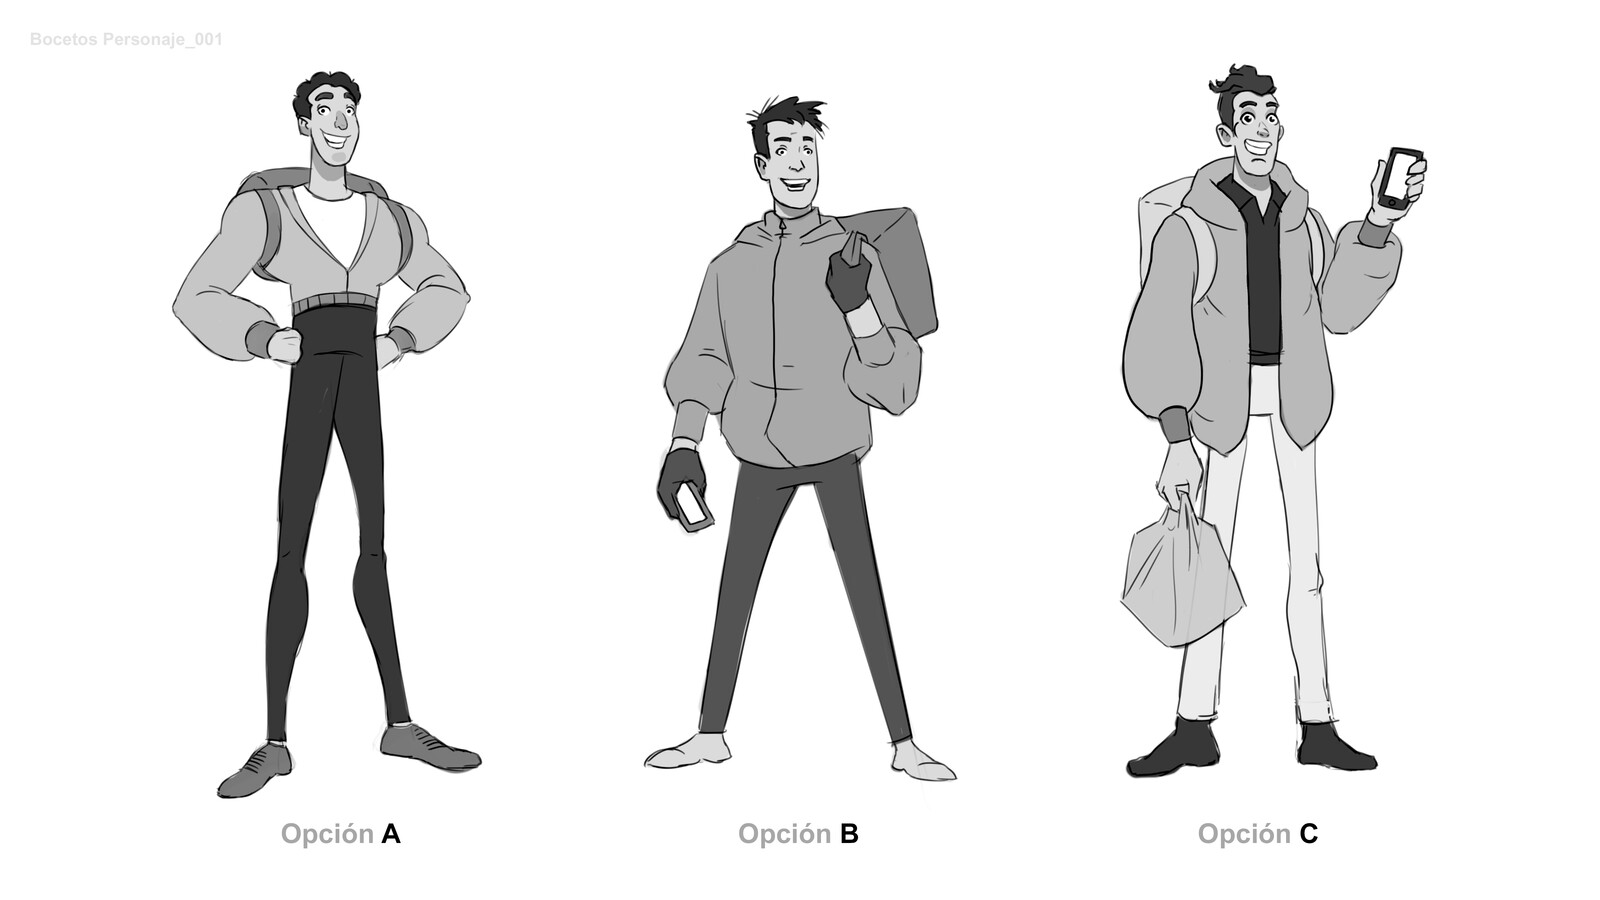 First Approach for the character design